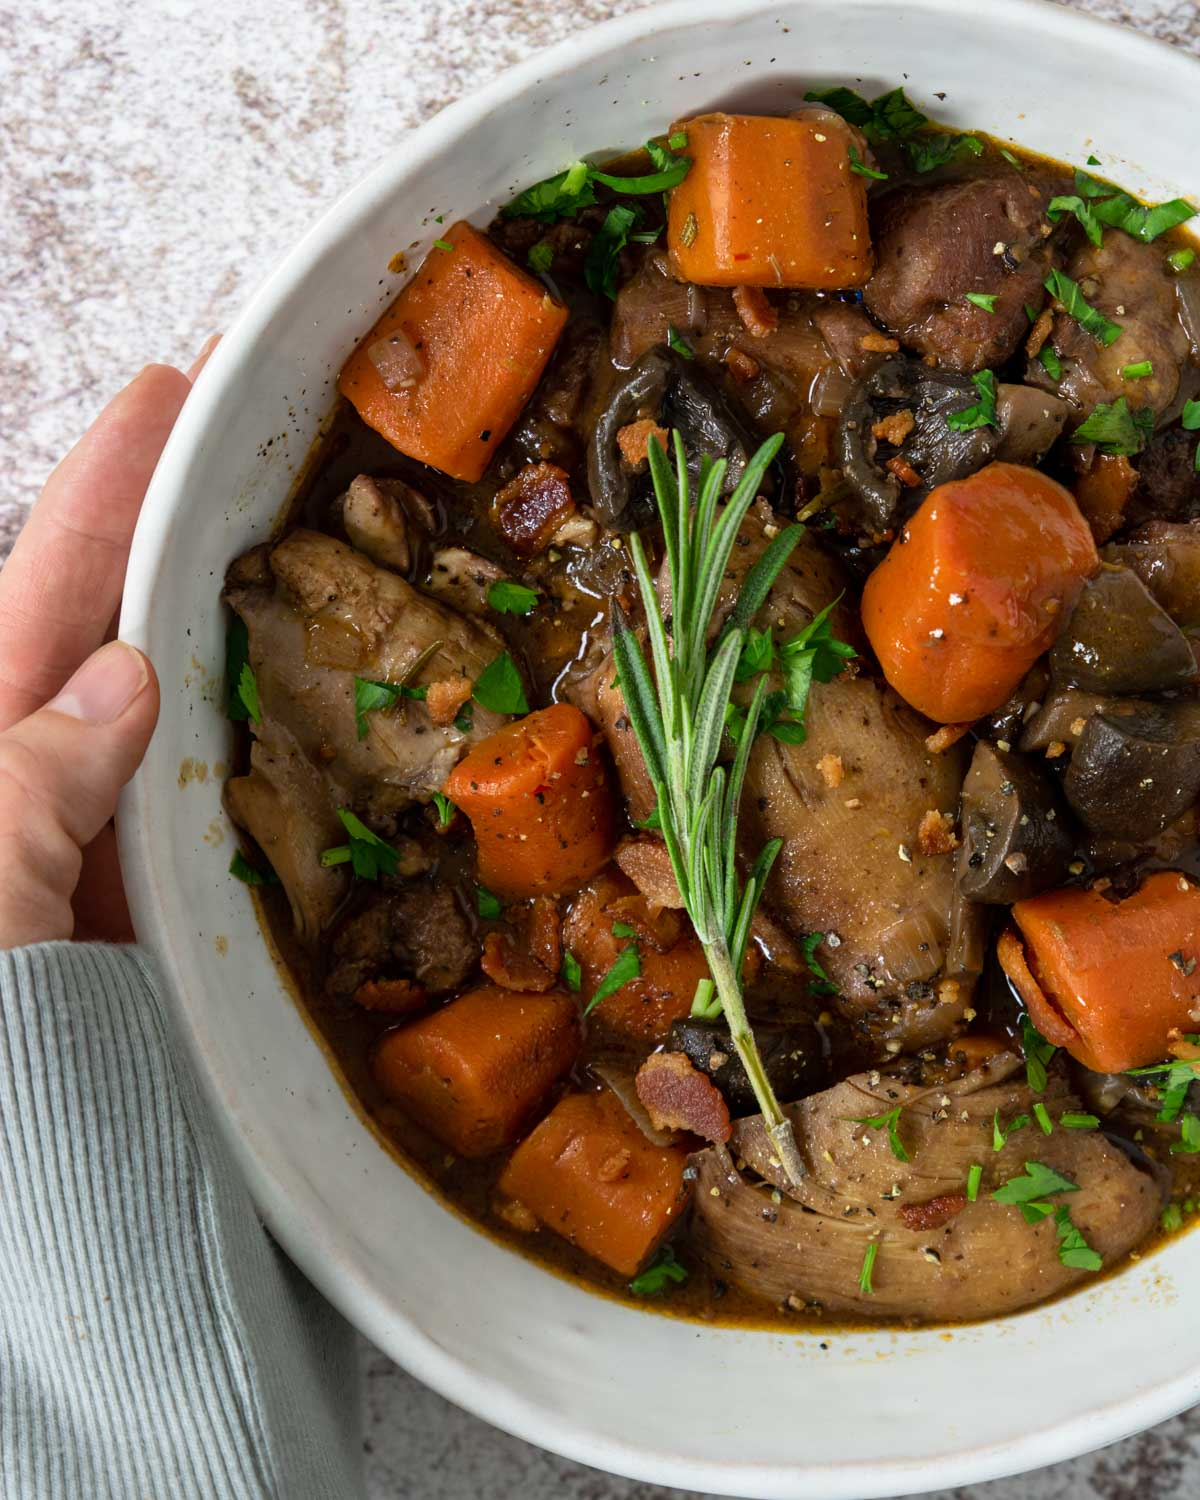 A big bowl of Coq Au Vin topped with rosemary sprig